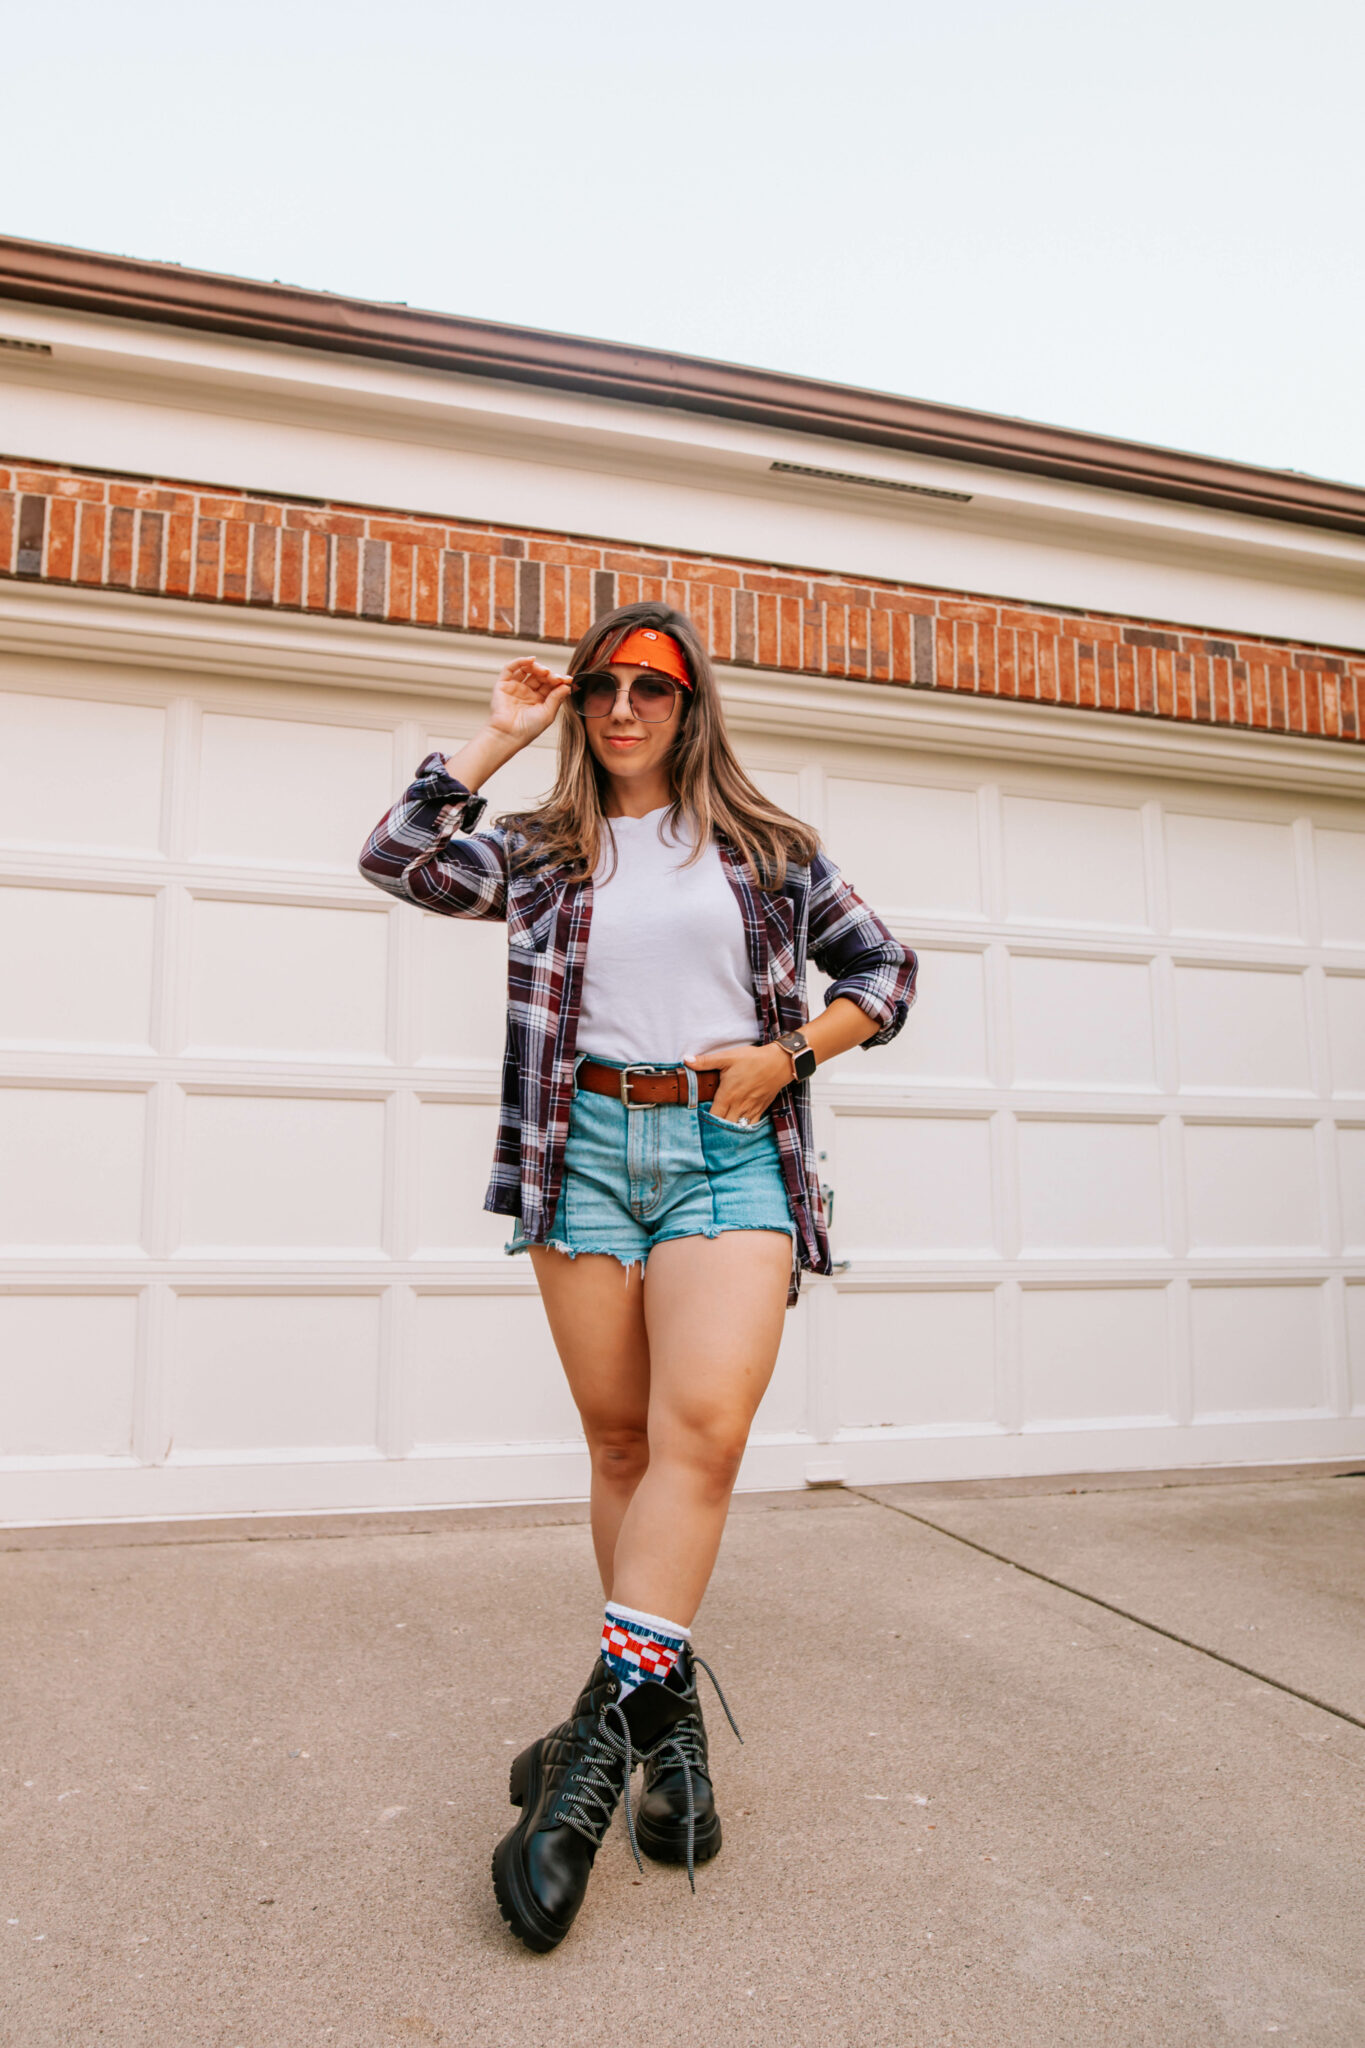 Grunge Clothing by popular Chicago fashion blog, Glass of Glam: image of a woman wearing a read bandana tied around her forehead, white t-shirt, distressed denim shorts, brown belt, plaid button up shirt, and black combat boots.